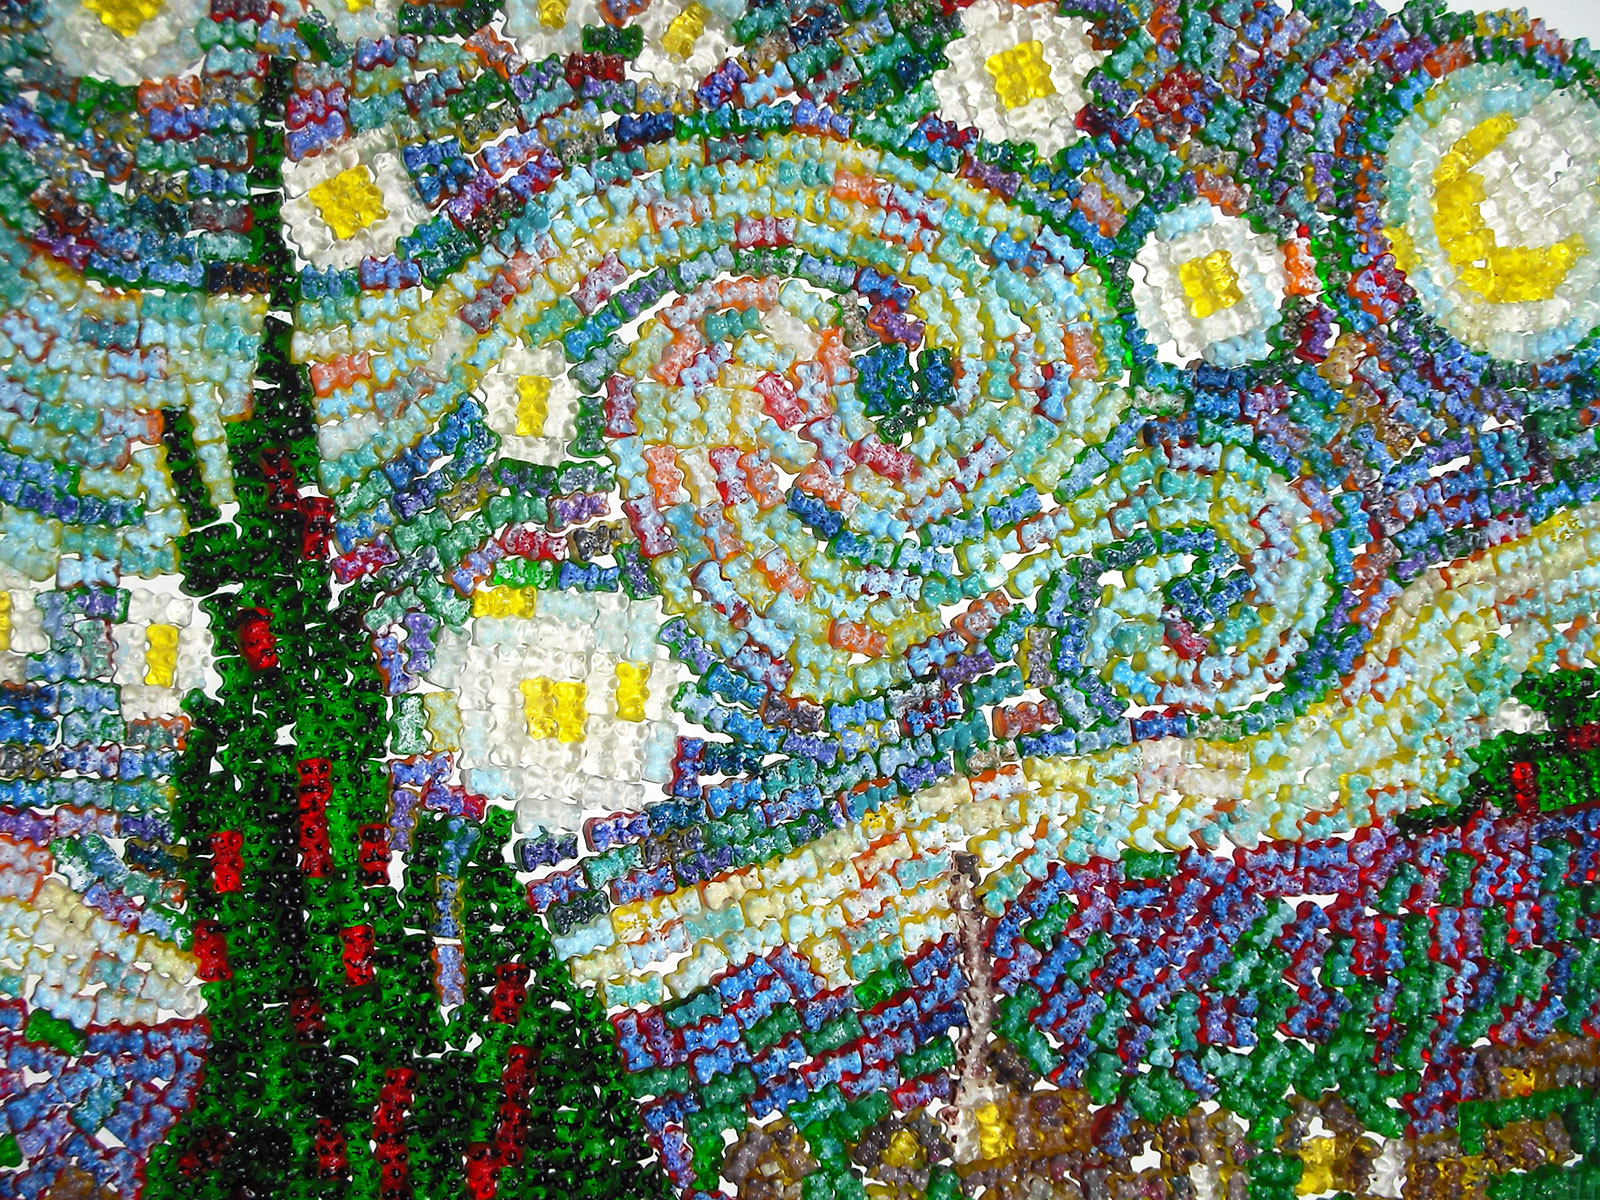 starry night made with gummy bears